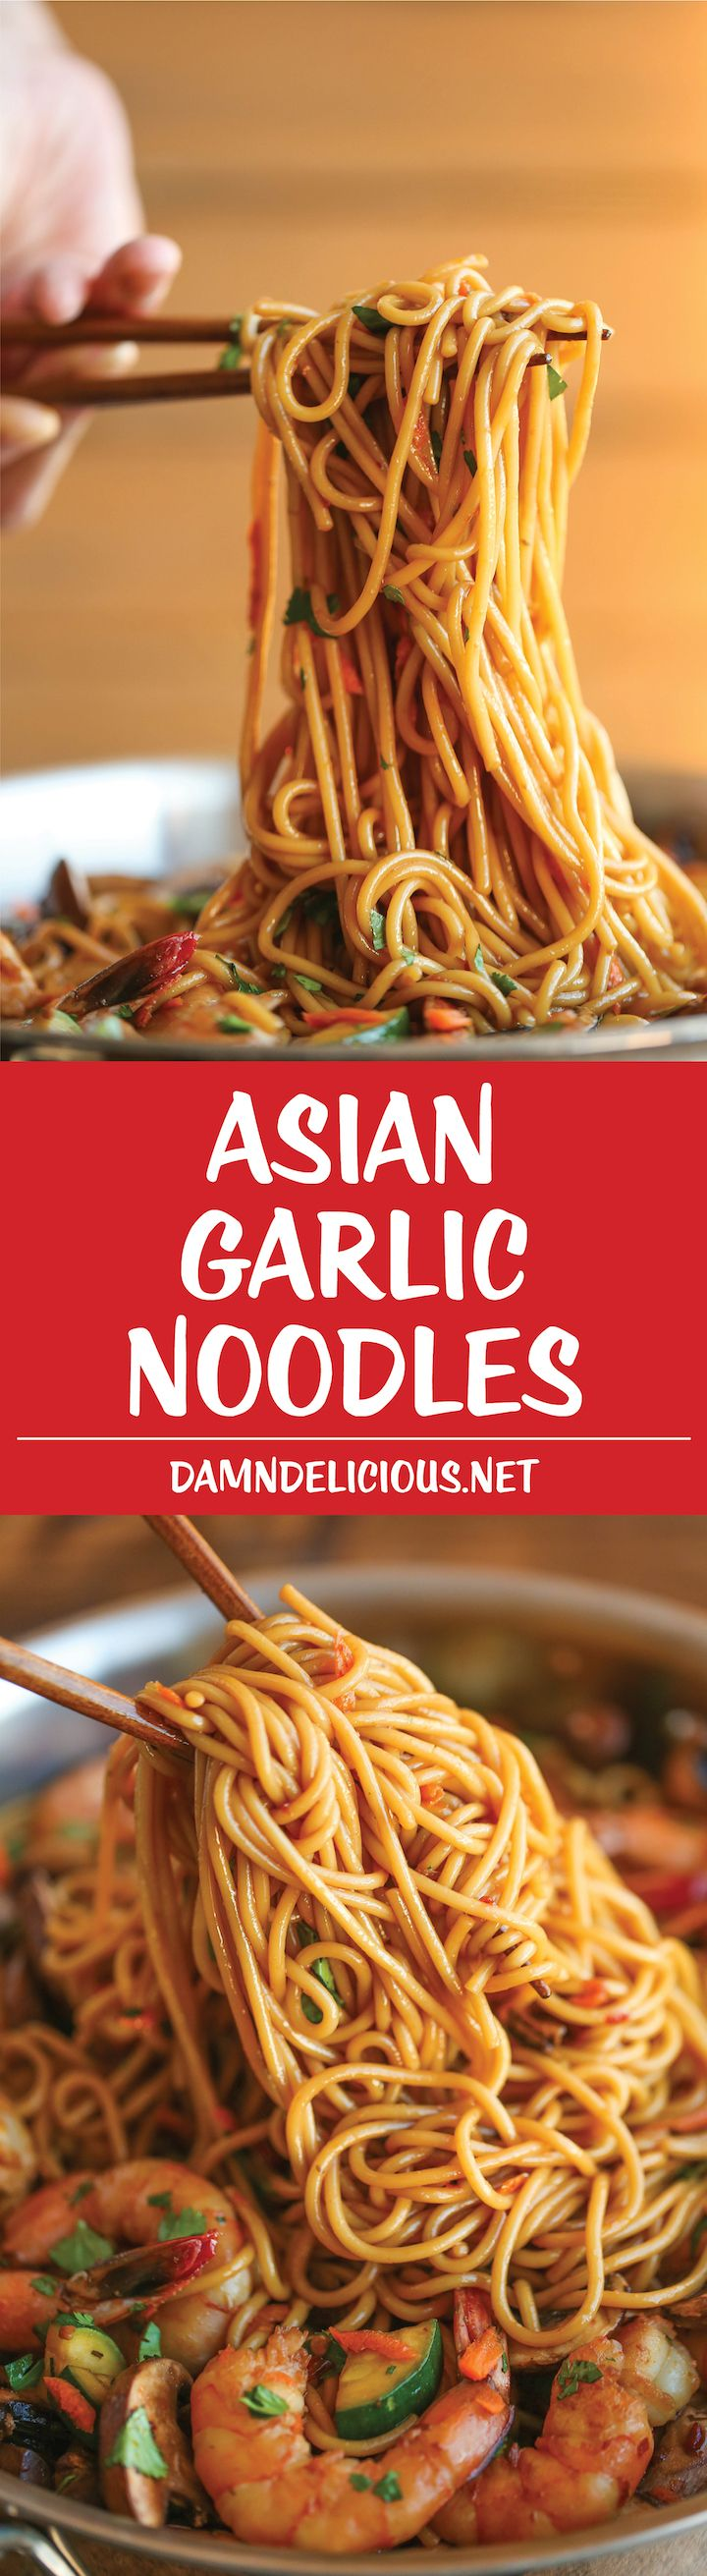 Asian Garlic Noodles - Easy peasy Asian noodle stir-fry using pantry ingredients that you already have on hand. Quick, no-fuss, and made in less than 30min!                                                                                                                                                      More